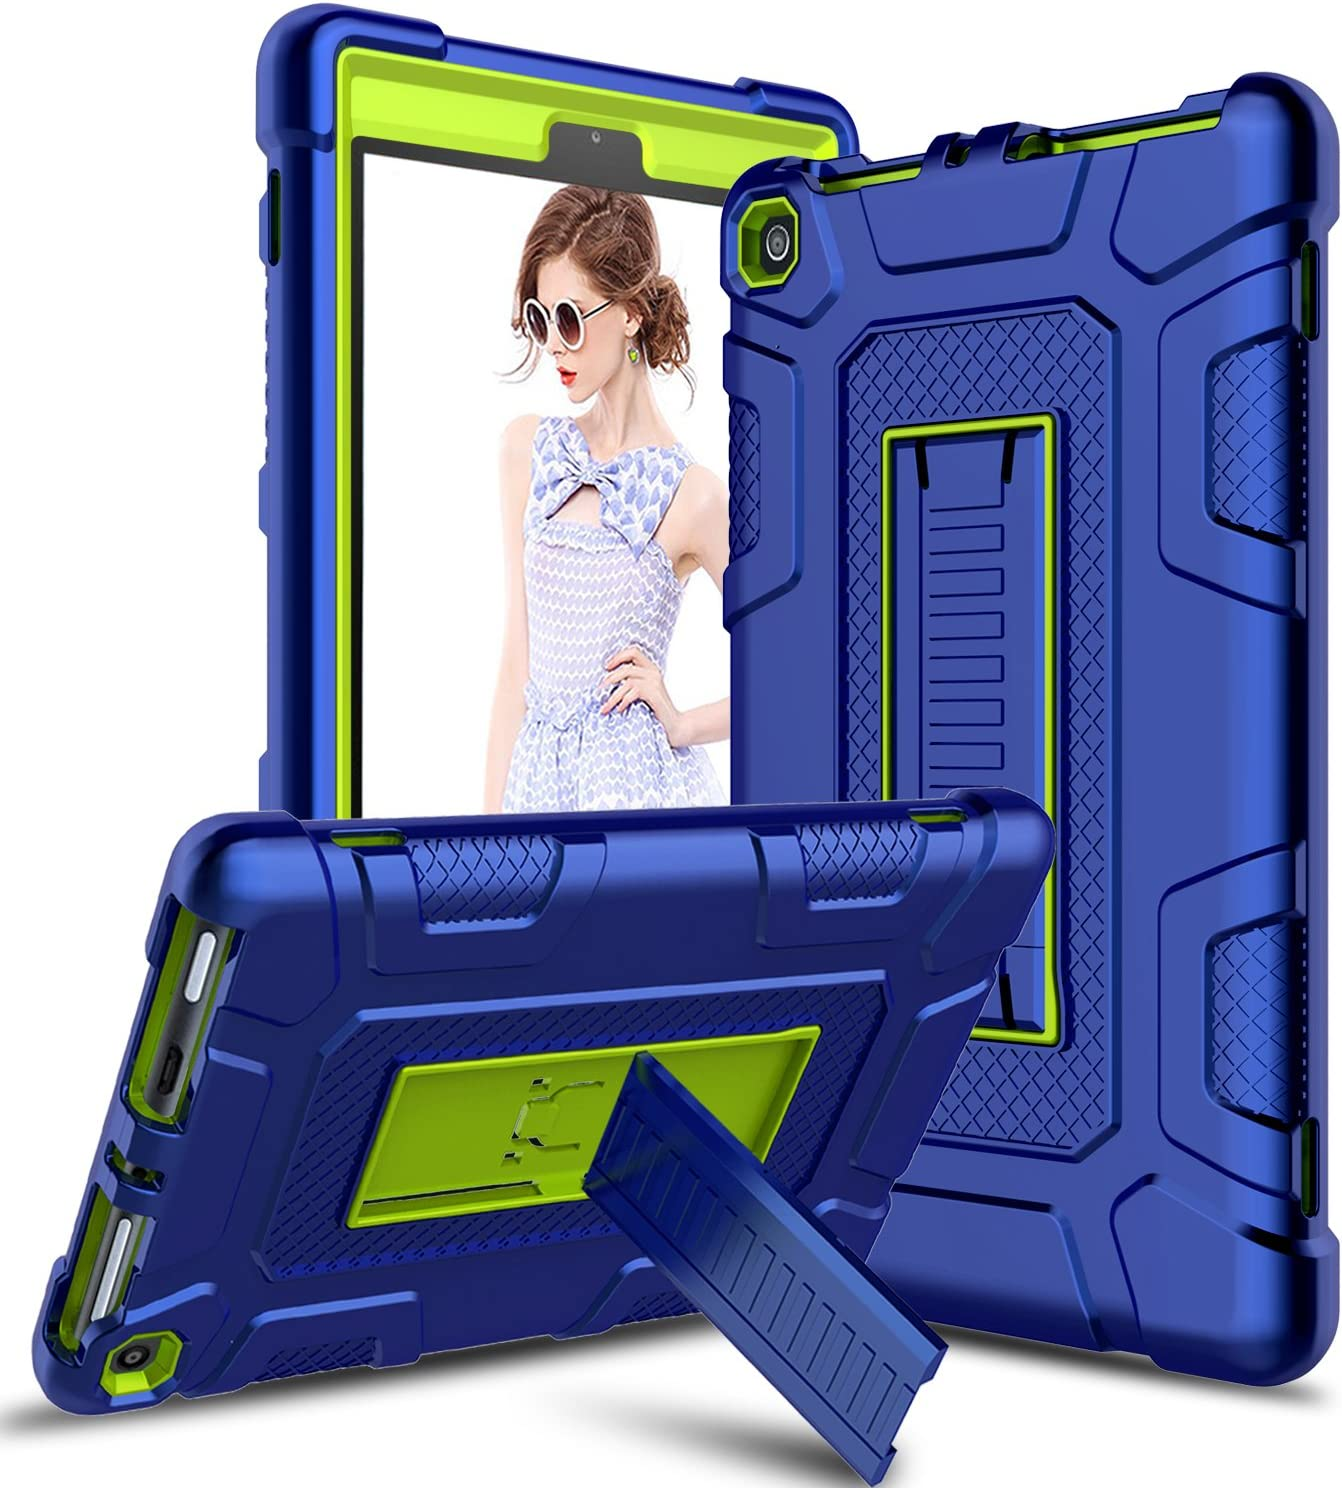 Venoro Case for All-New  Fire HD 8 Tablet 7th 8th Generation, 2017 2018 Release Kindle Fire 8 Case Cover with Kickstand Compatible with Fire HD 8 Tablet Blue//Yellow